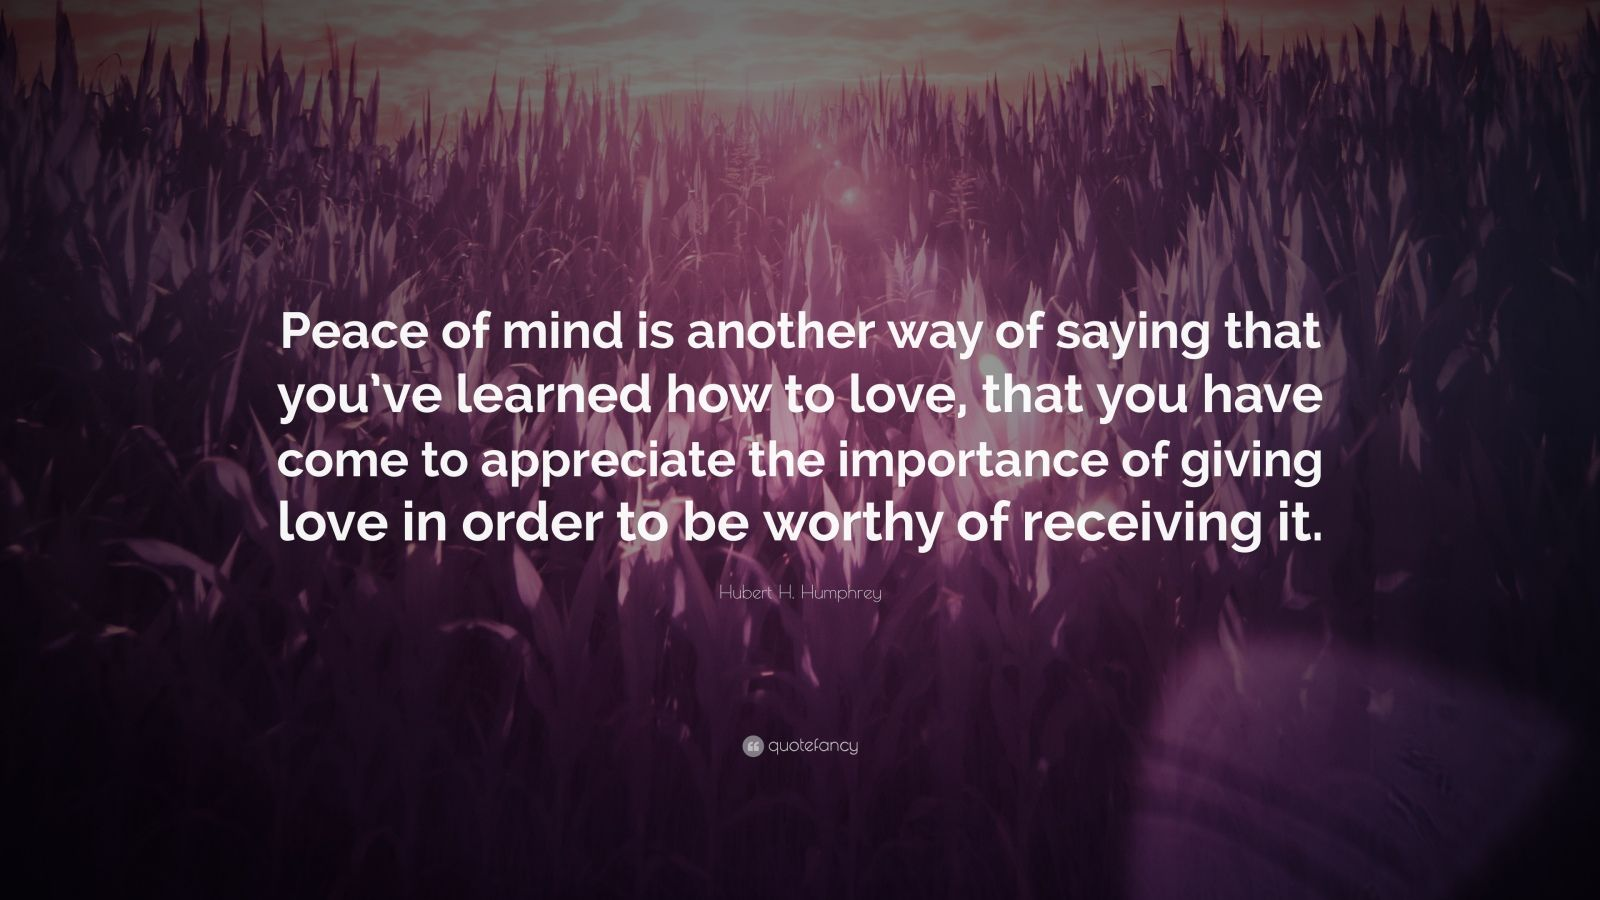 "Hubert H. Humphrey Quote: ""Peace of mind is another way of saying that you've learned how to love, that you have come to appreciate the importance of giving love in order to be worthy of receiving it."""